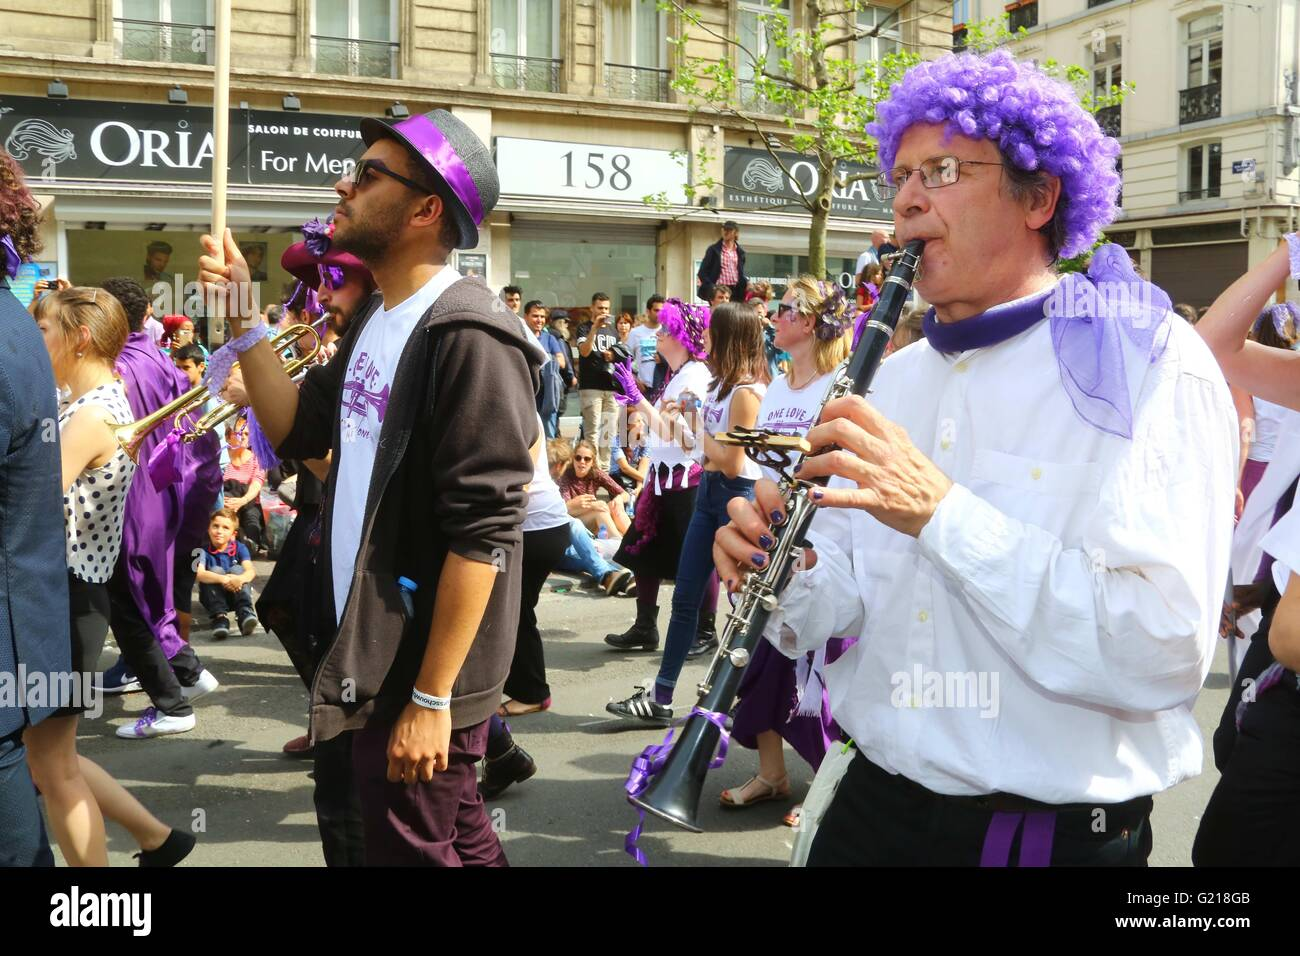 """Brussels. 21st May, 2016. Performers take part in the biyearly Zinneke Parade under the theme """"Fragil"""" in Brussels, Stock Photo"""